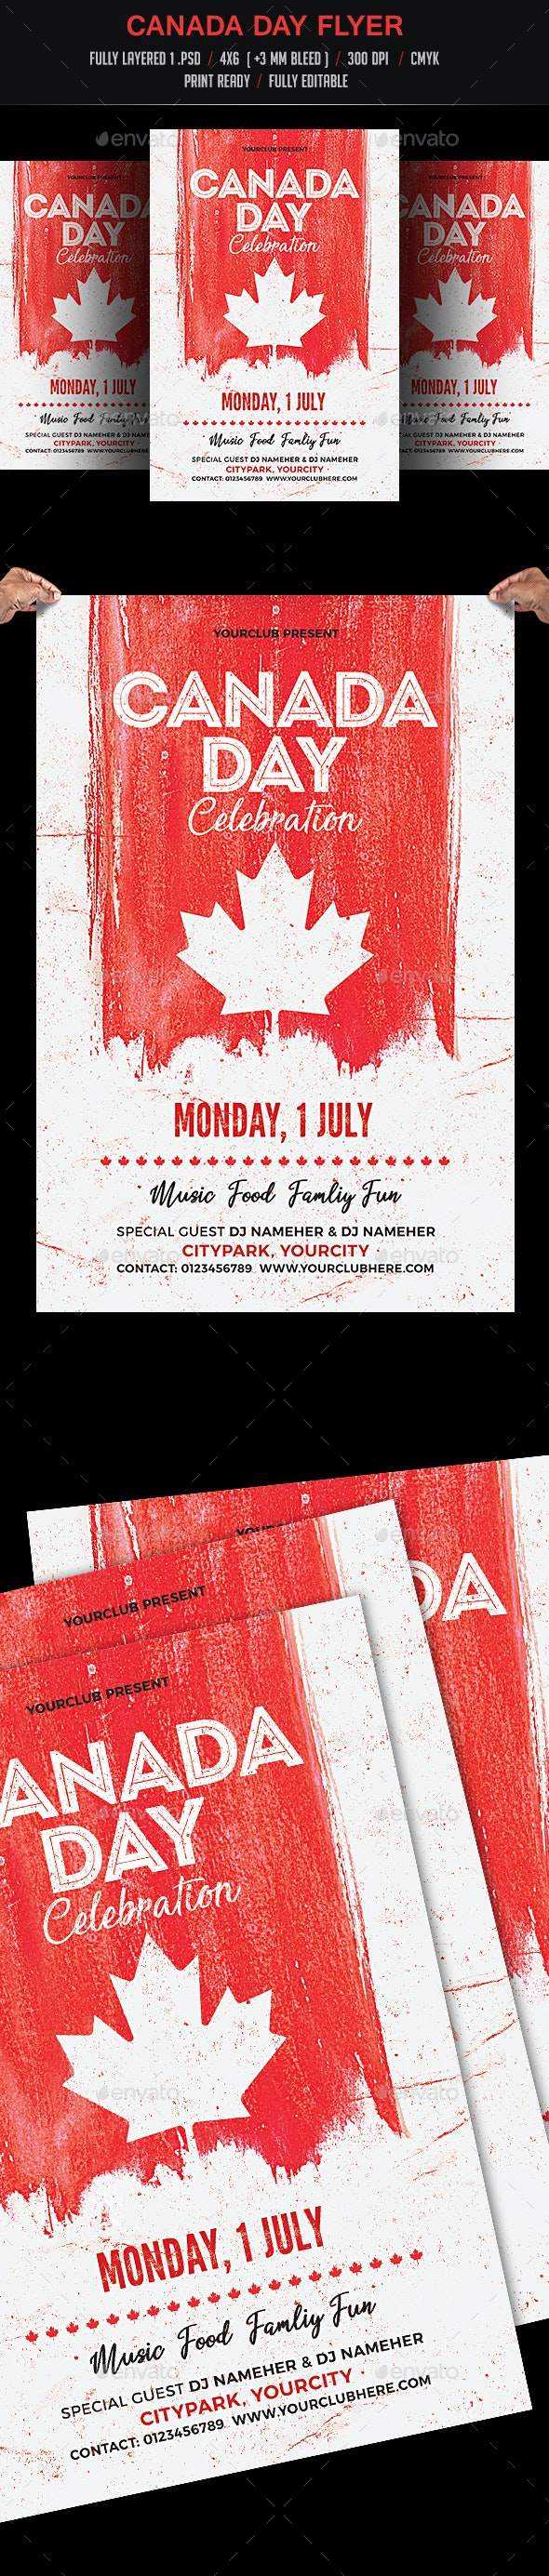 Canada Day Celebration Flyer - Events Flyers